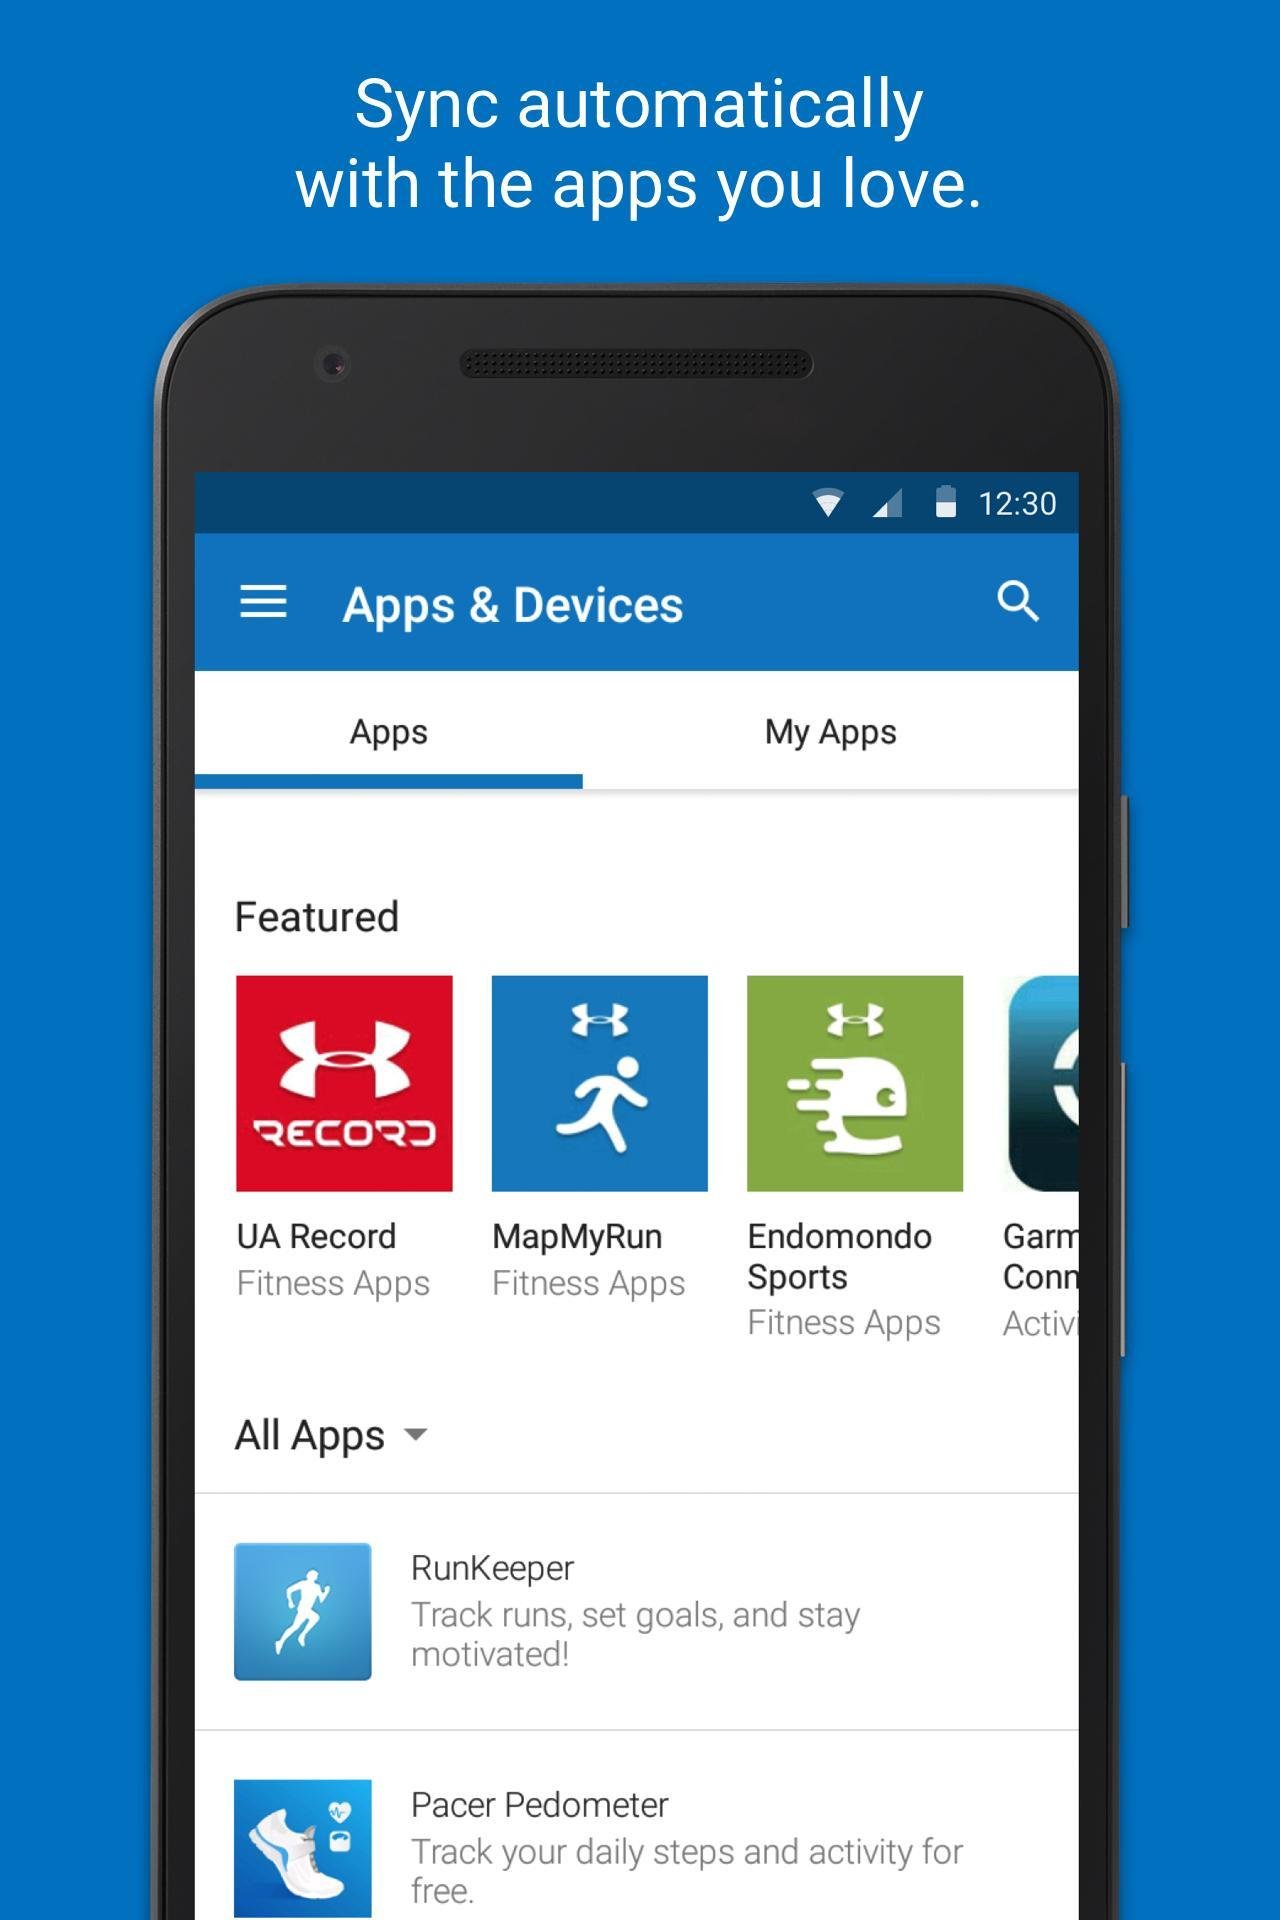 Calorie Counter - MyFitnessPal for Android - APK Download on map of camp woodward pa, map run app, 15 mile long run, map of alberta, map keeper, map washington state dot, map icon, map of parks in edmonds, map store, map of ireland, map of new jersey, map of mobile, map of korean peninsula, map of state parks, color run, map of abdomen, map of the stars in the sky, map of europe, iphone 15 mile run, map of downtown huntsville alabama,